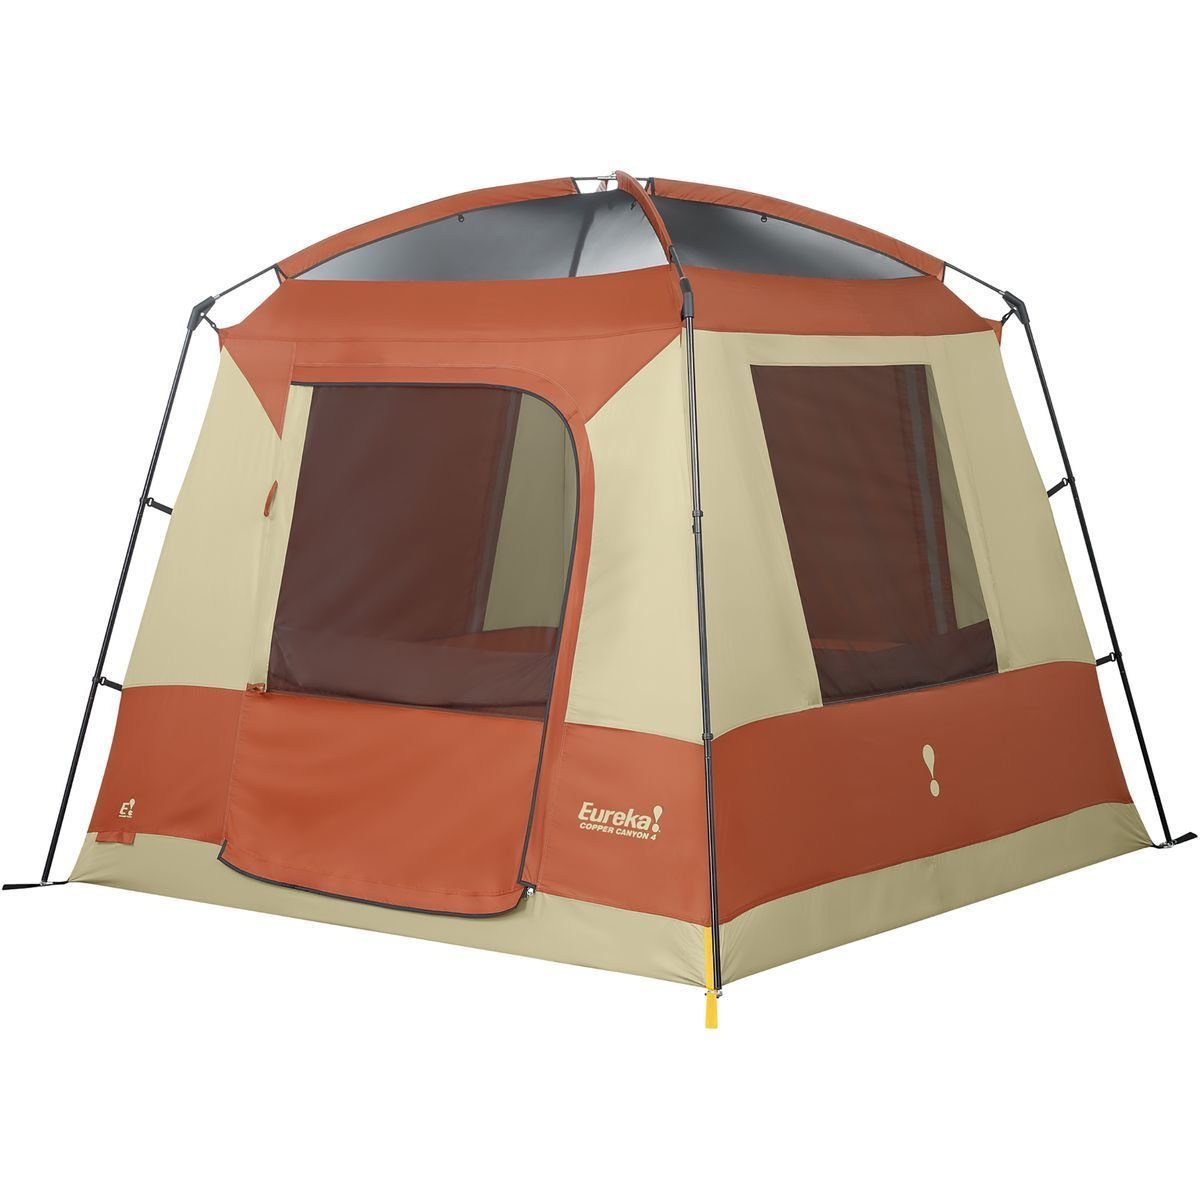 Amazon.com  Eureka Copper Canyon 4 -Person Tent  Family Tents  Sports u0026 Outdoors  sc 1 st  Amazon.com & Amazon.com : Eureka Copper Canyon 4 -Person Tent : Family Tents ...